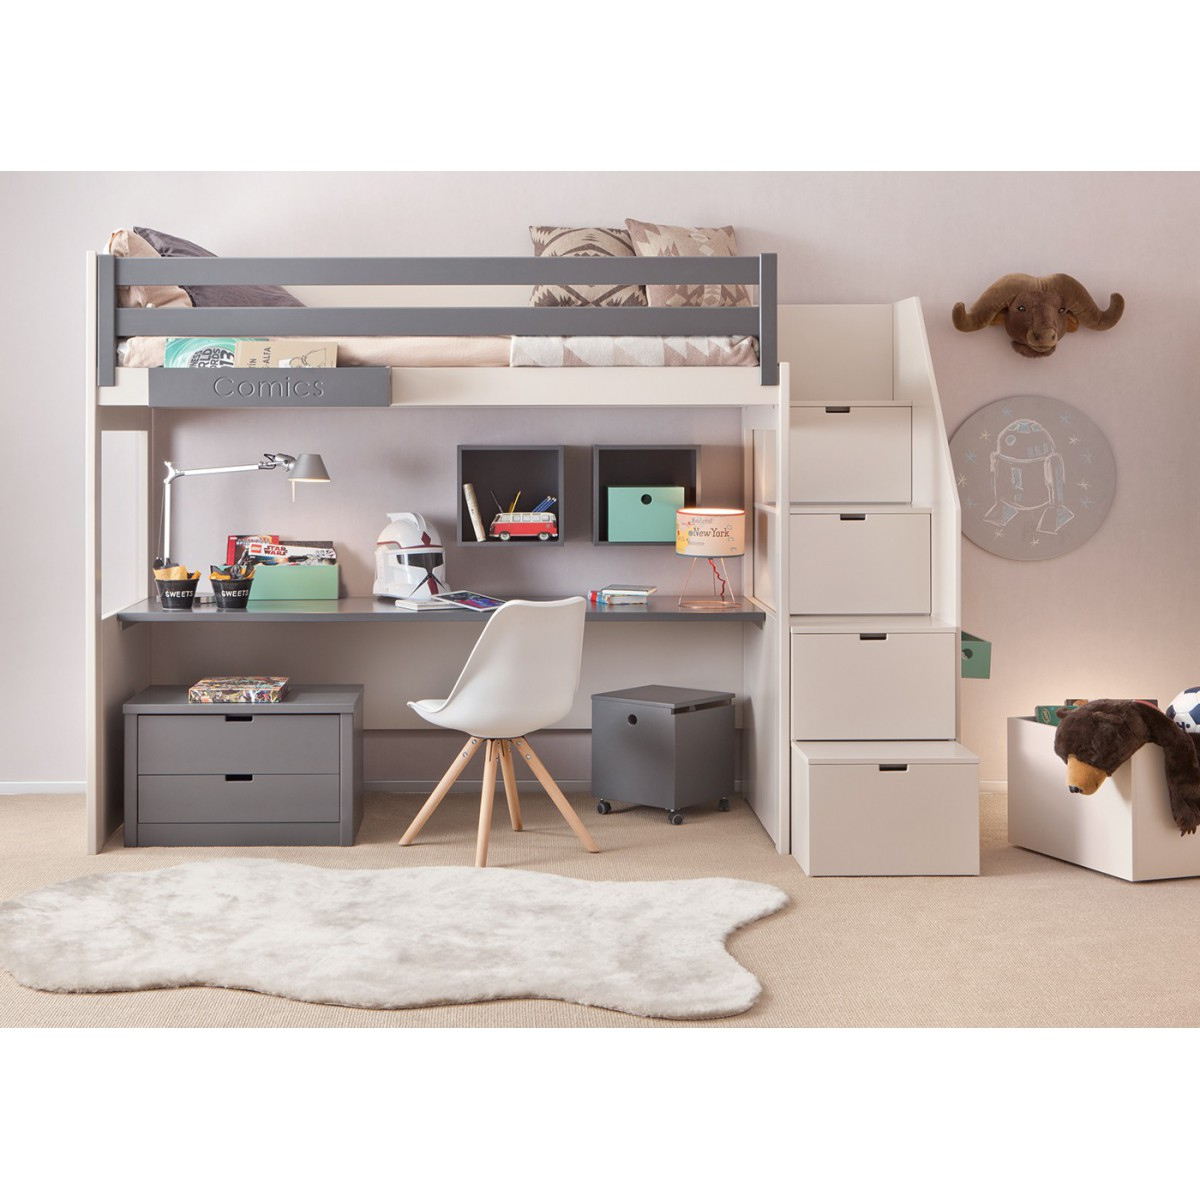 Chambre design sp cial ados juniors sign for Chambre enfant design